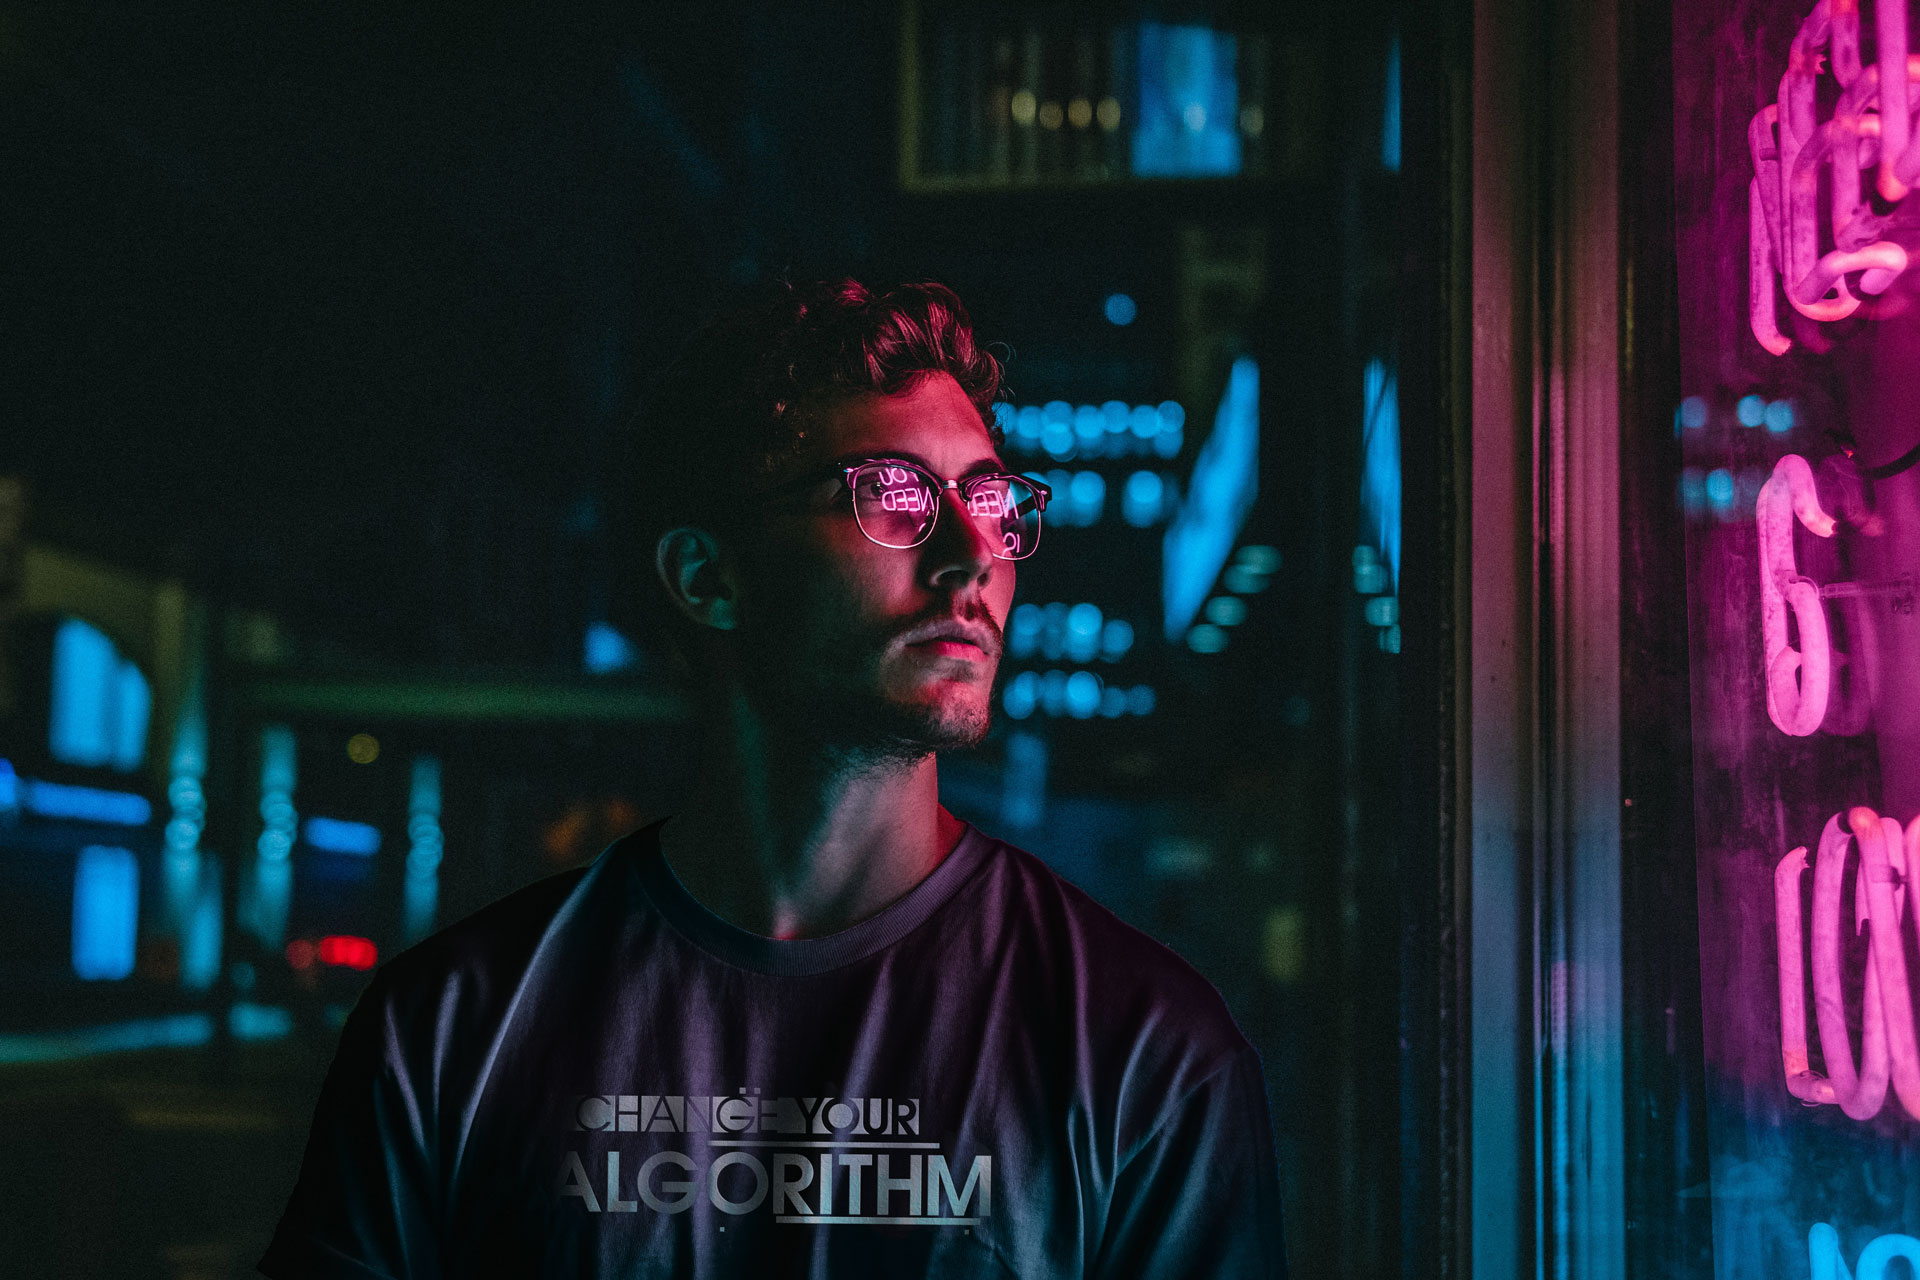 male staring at neon sign